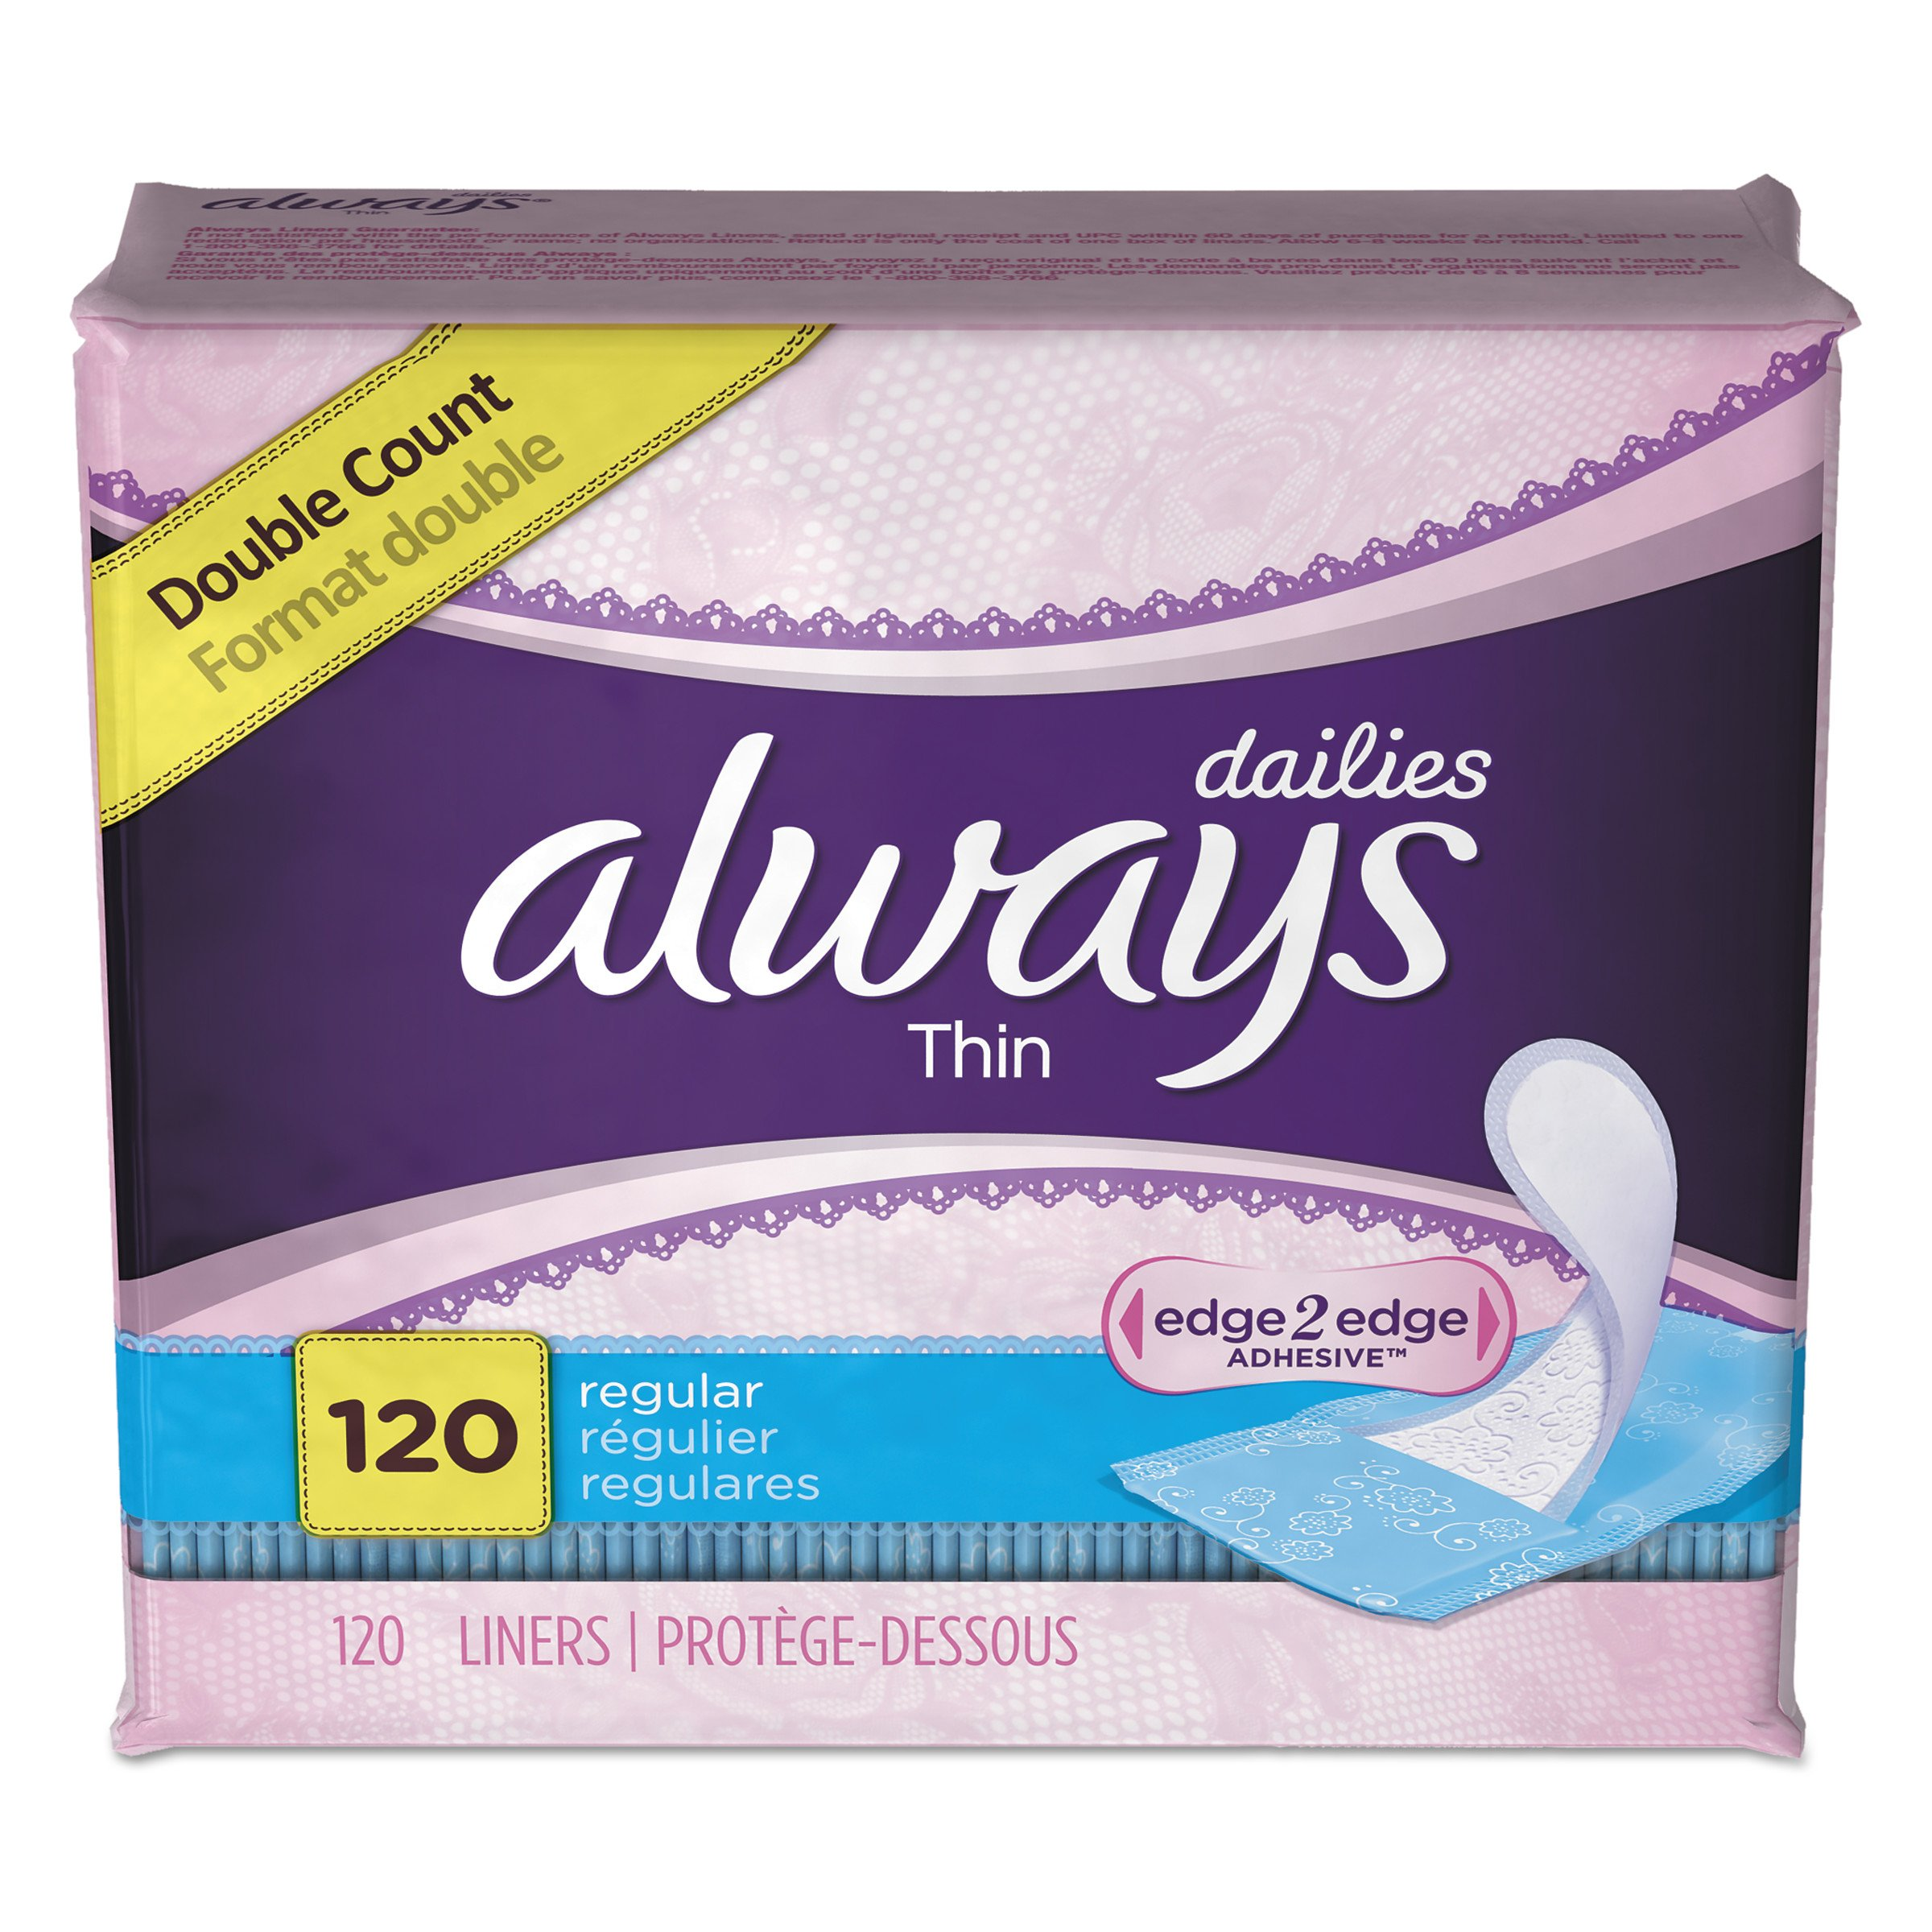 Always 10796 Dailies Thin Liners, Regular, 120 per Pack (Case of 6 Packs) by Always